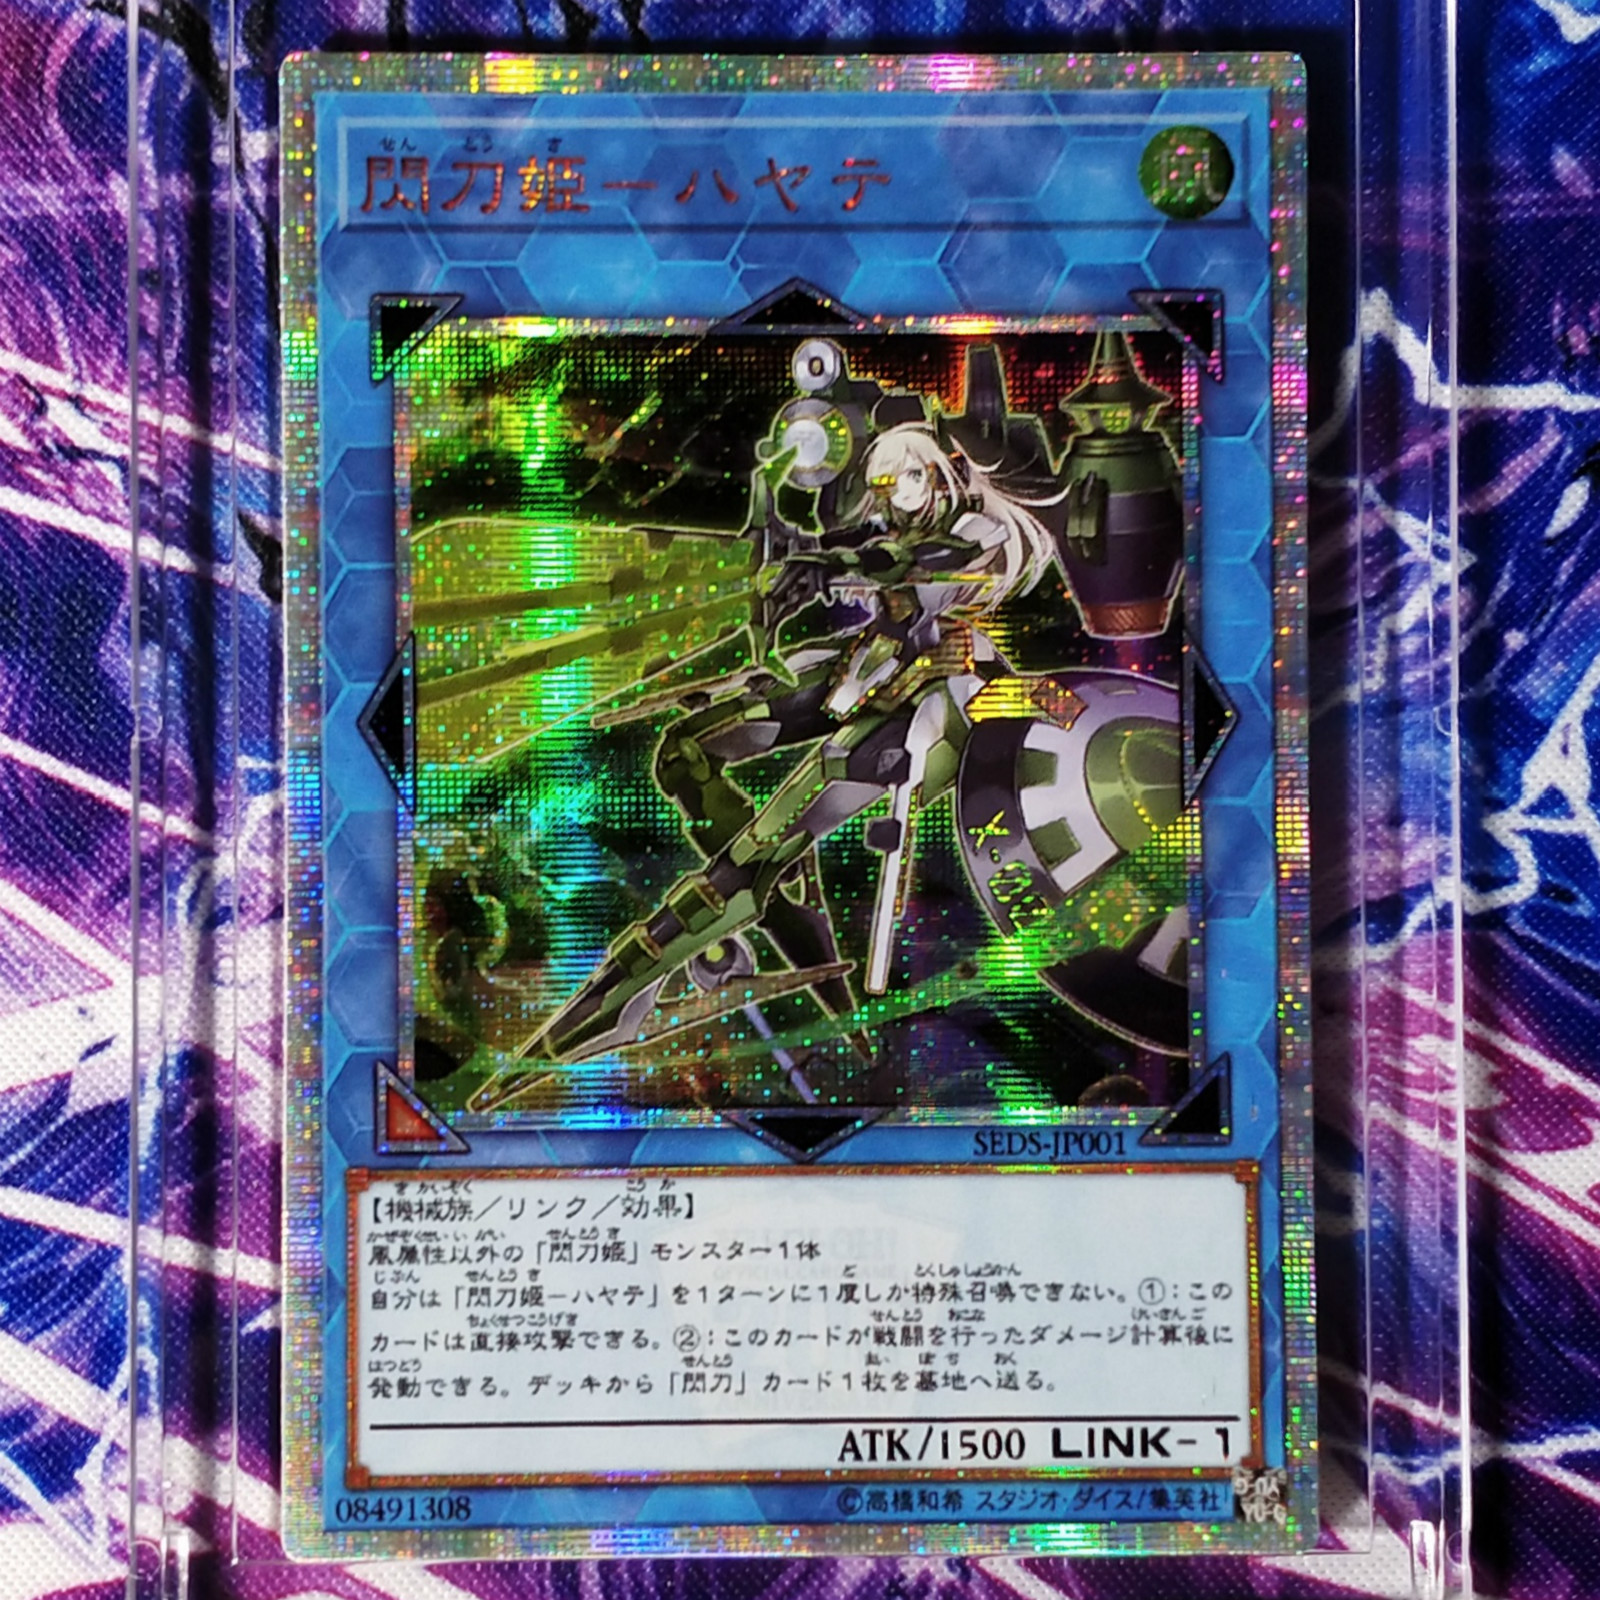 Yu Gi Oh DIY Sky Striker Ace – Hayate Colorful Toys Hobbies Hobby Collectibles Game Collection Anime Cards